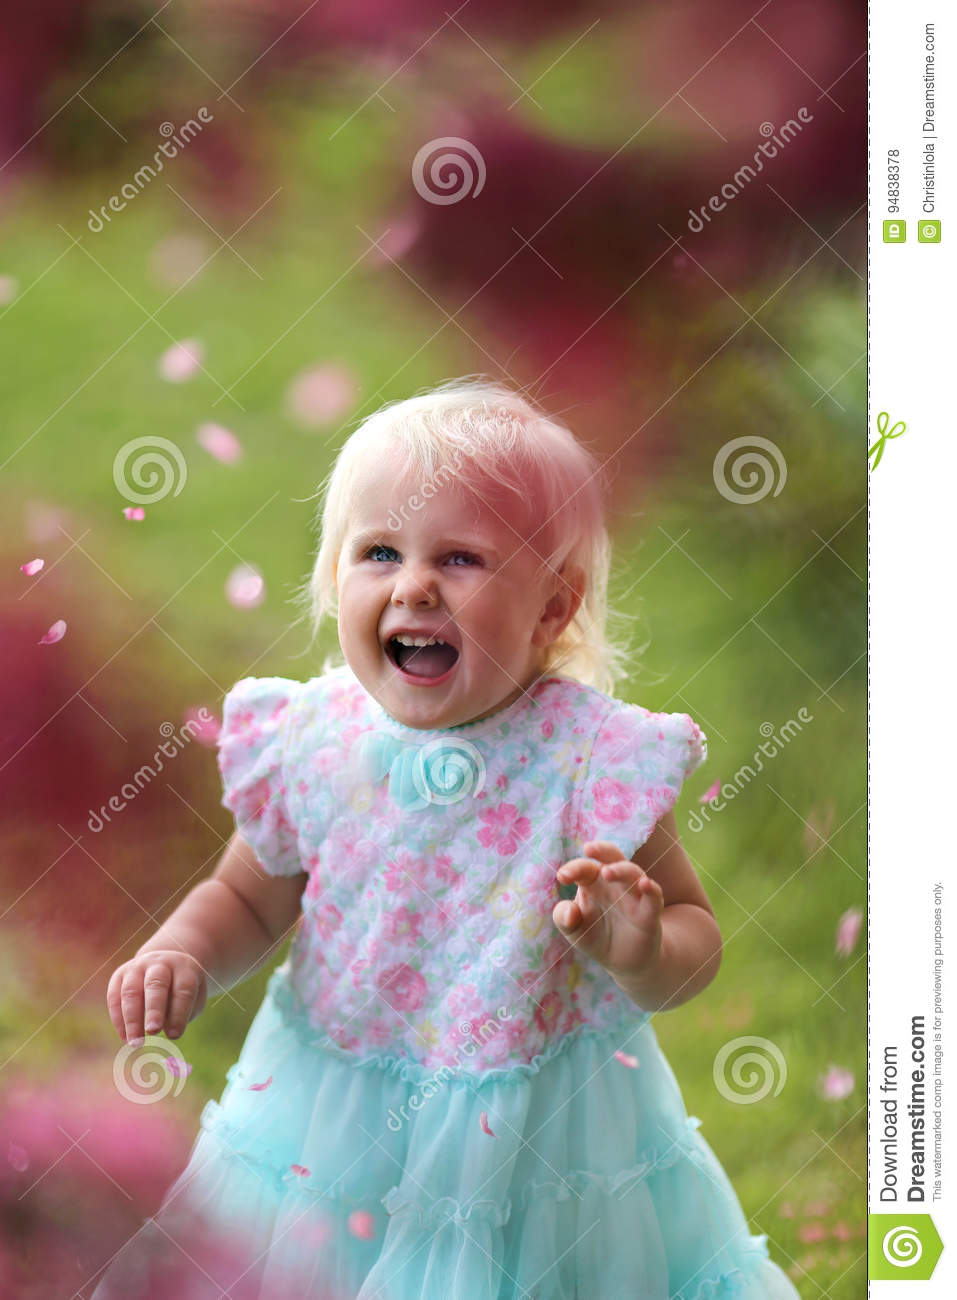 Happy Young Toddler Girl Laughing as Flower Petals Fall Off a Cr